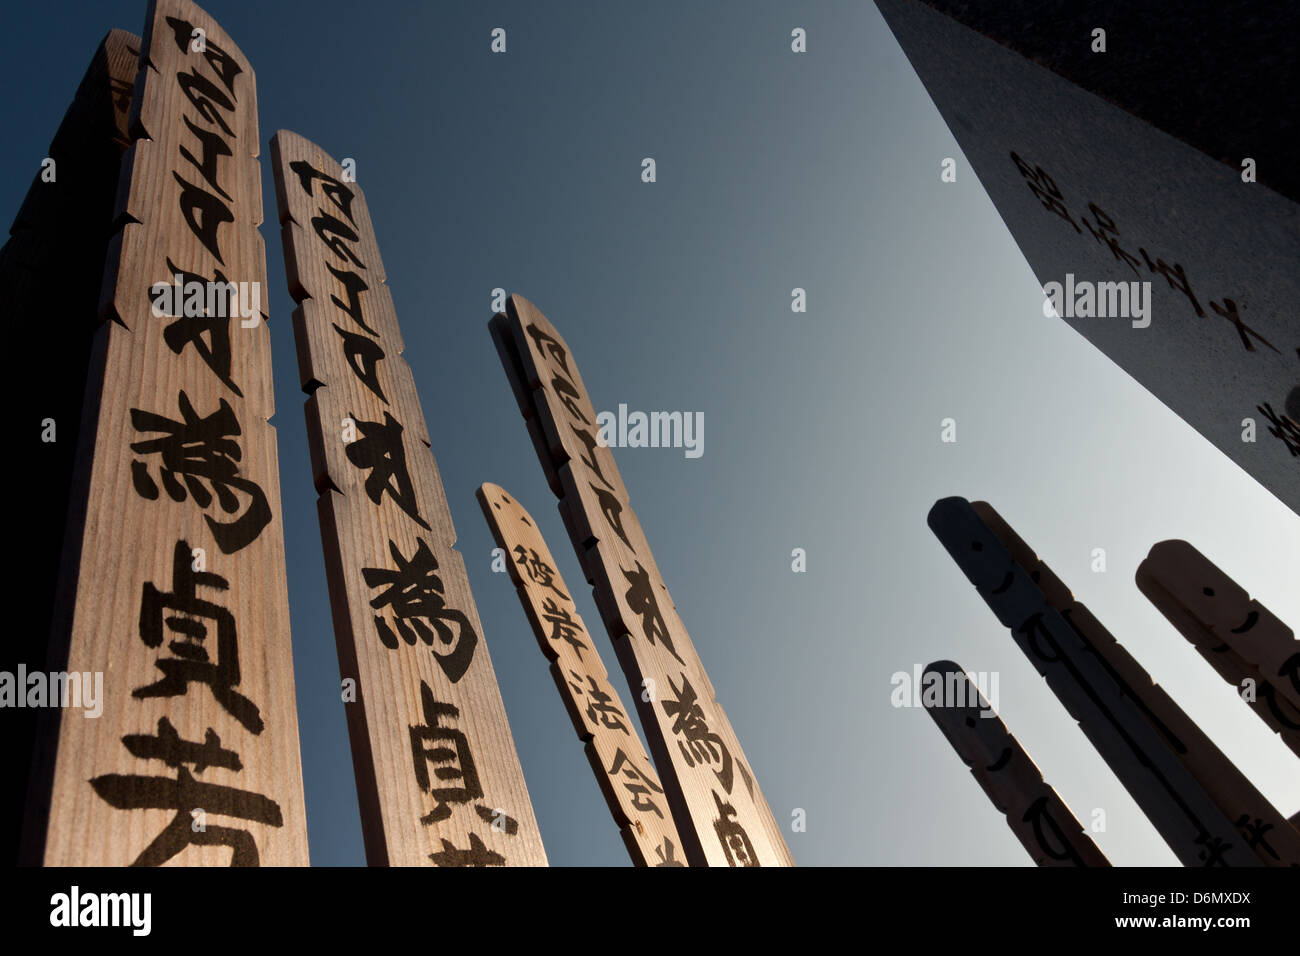 A Japanese grave with Toba, wooden tablets bearing the name of deceased people, in Aoyama cemetery, Tokyo, Japan Stock Photo